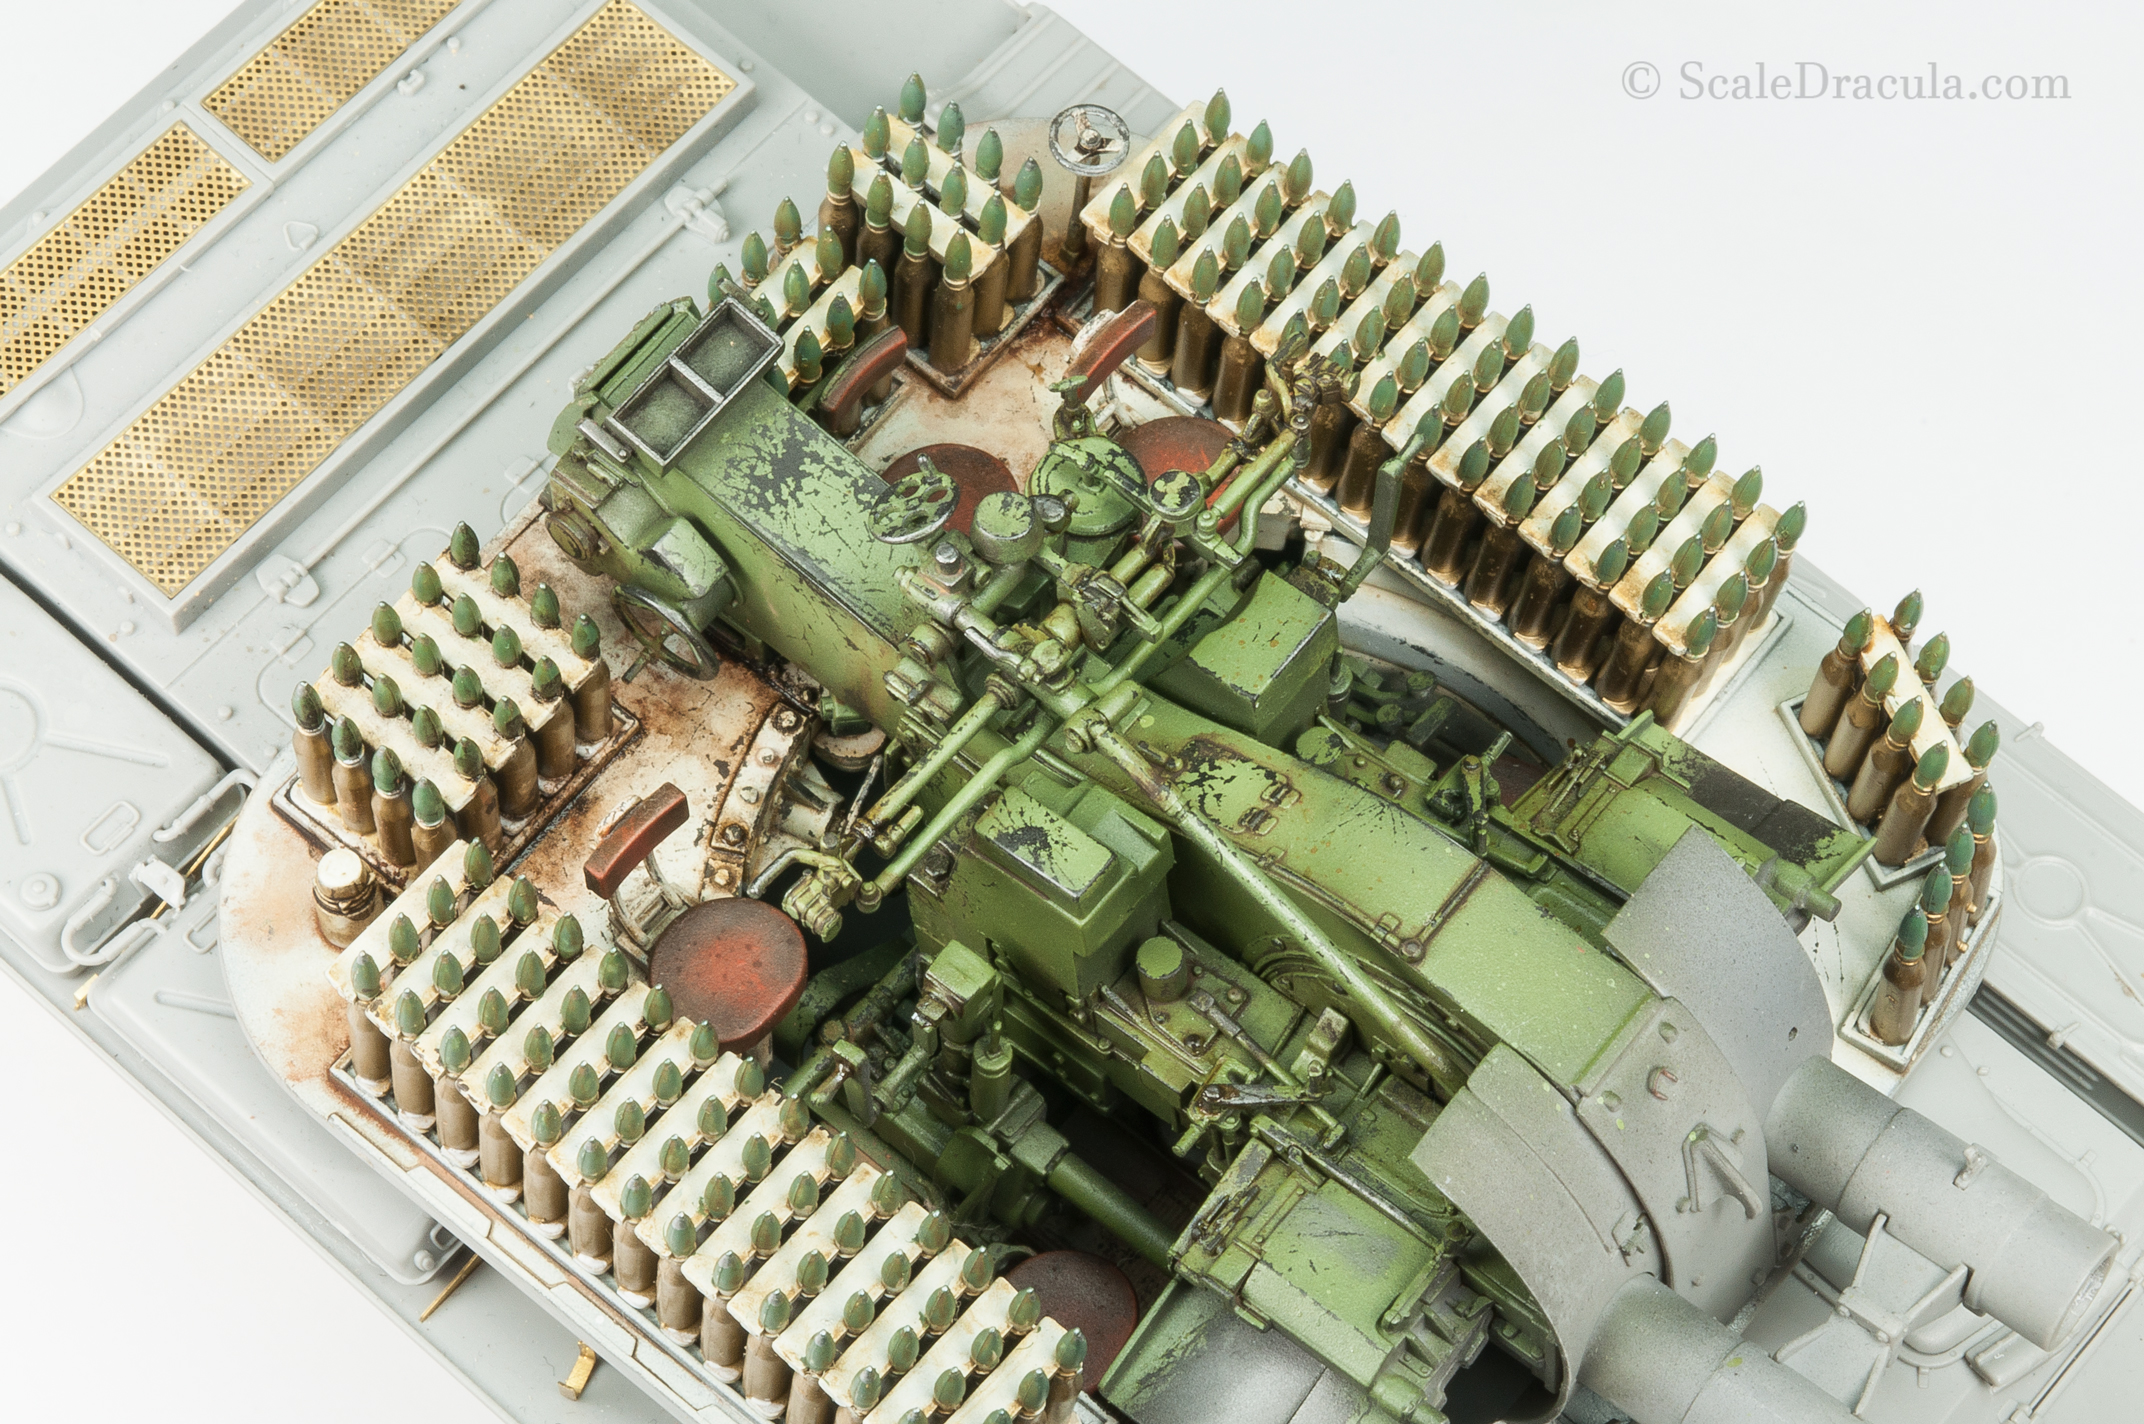 Finished interior, ZSU-57 by TAKOM